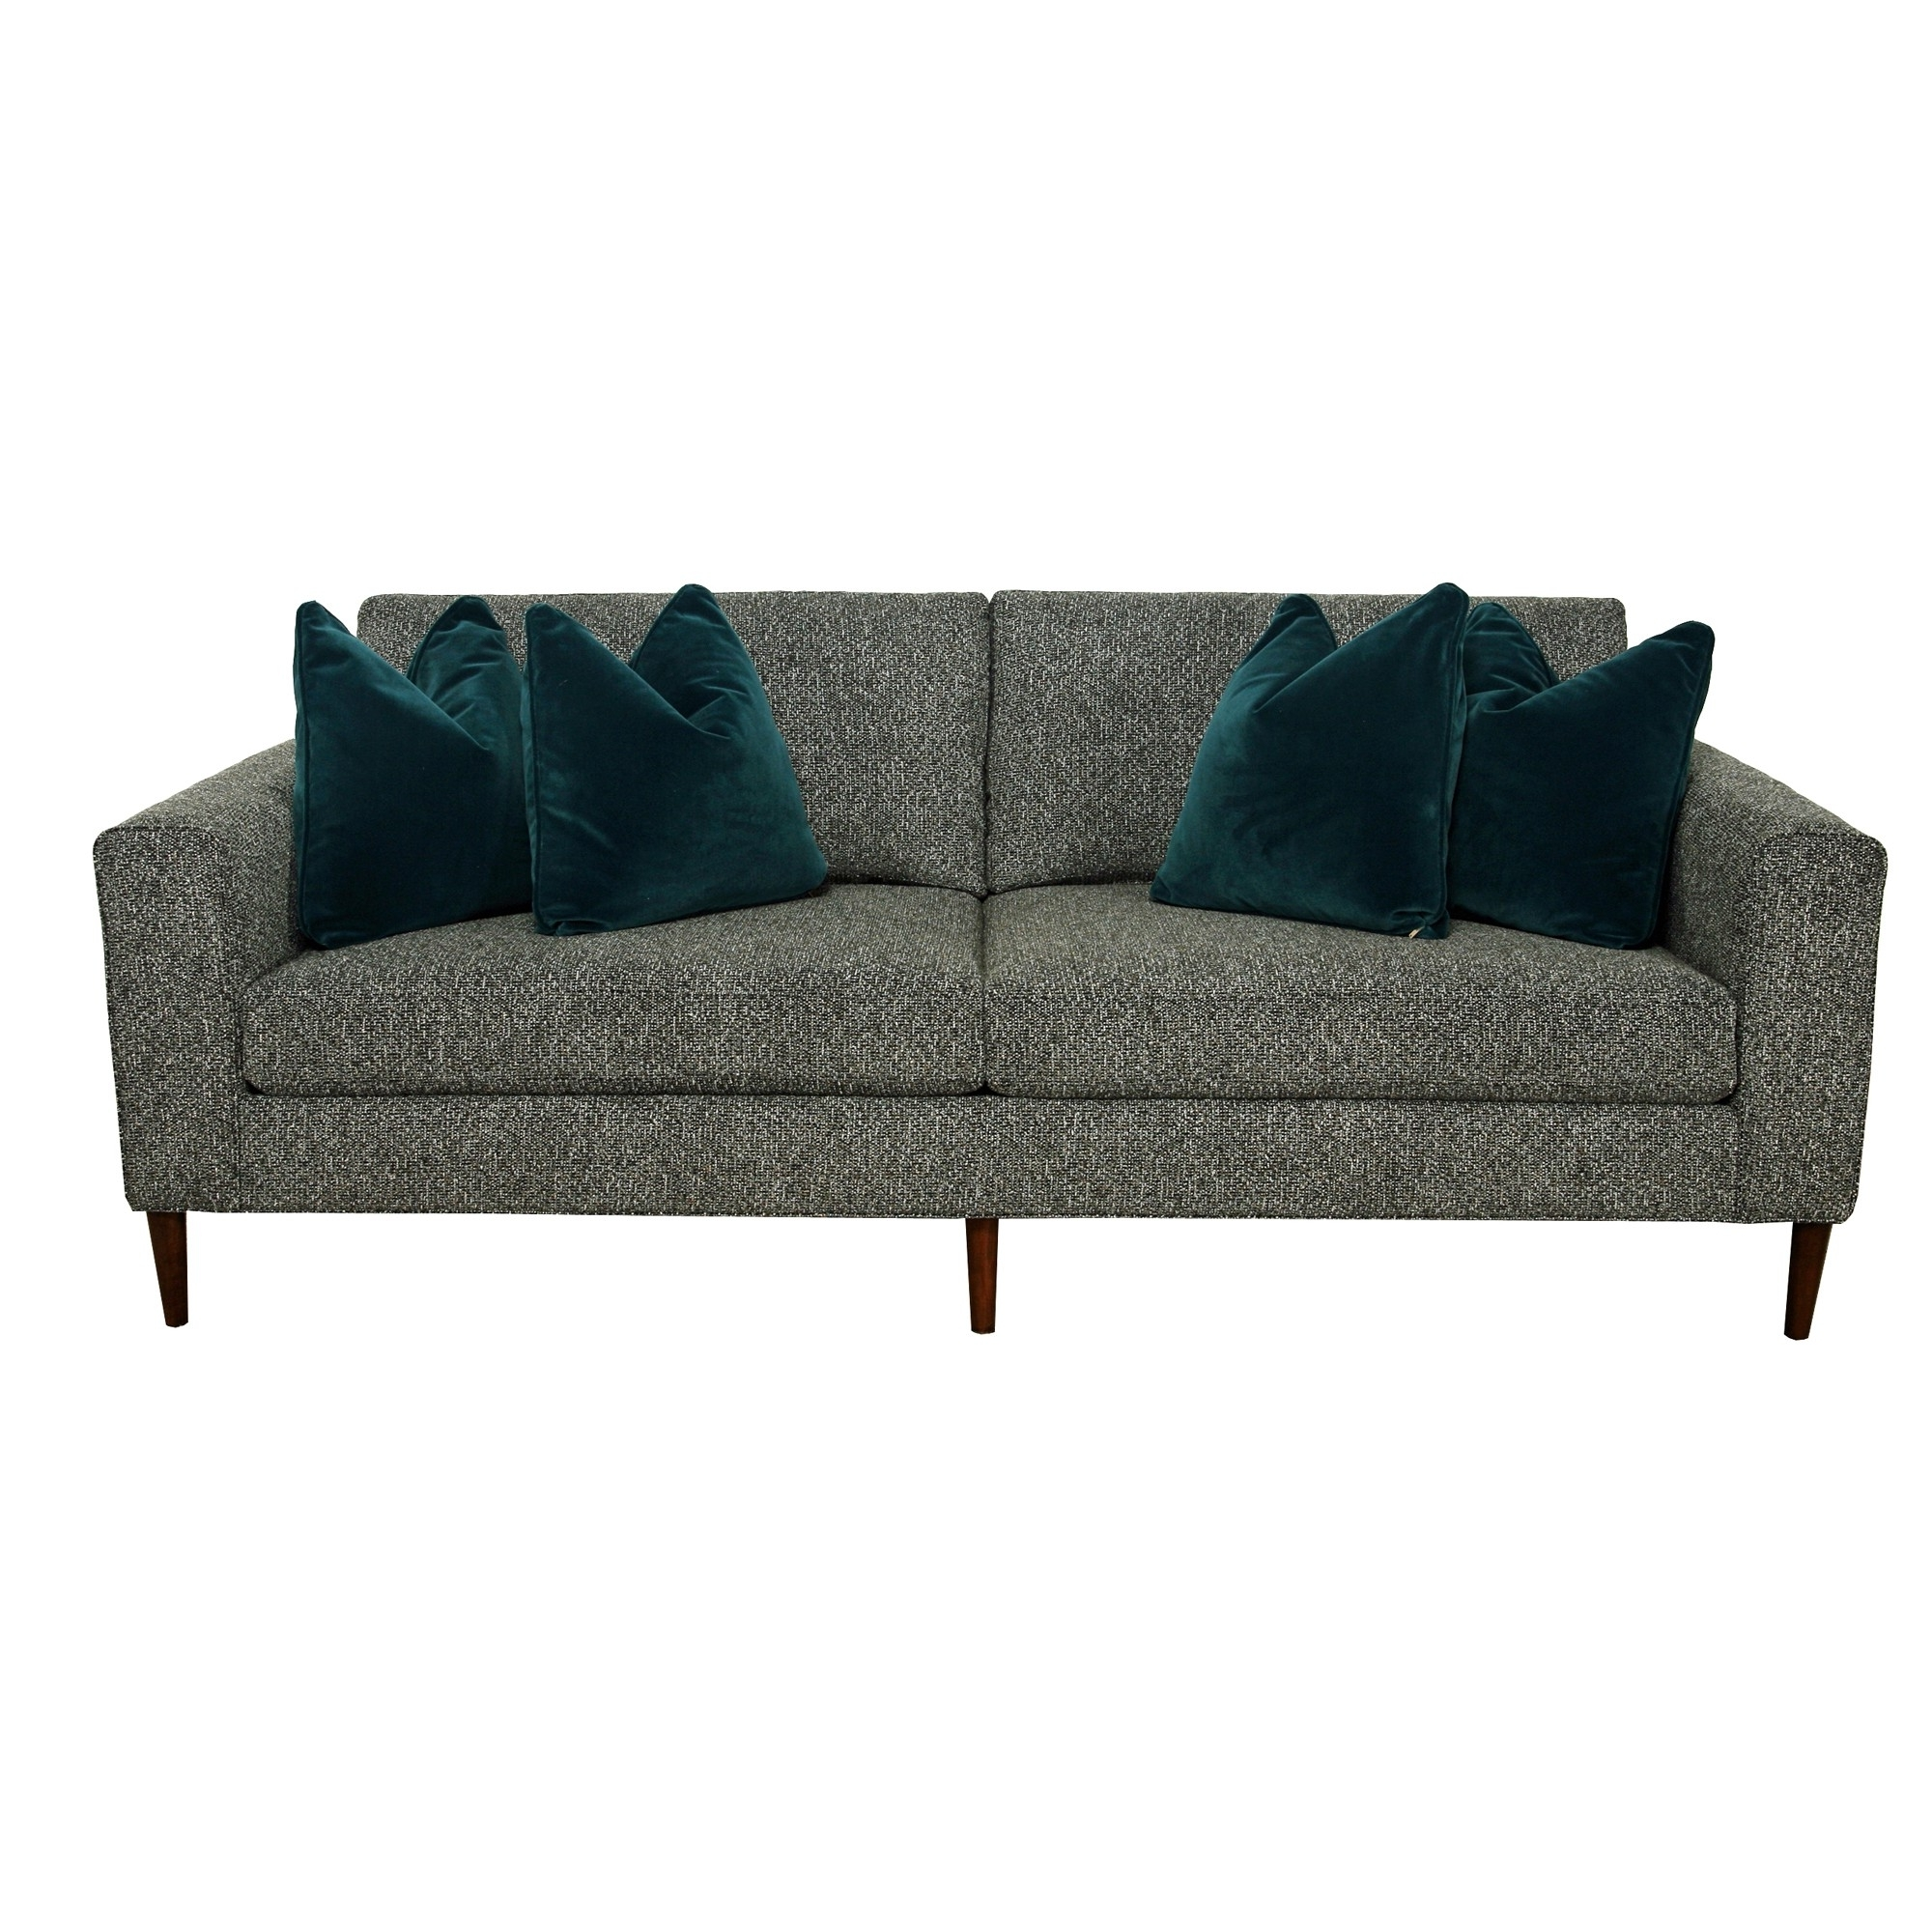 Tepperman's In Teppermans Sectional Sofas (View 11 of 20)